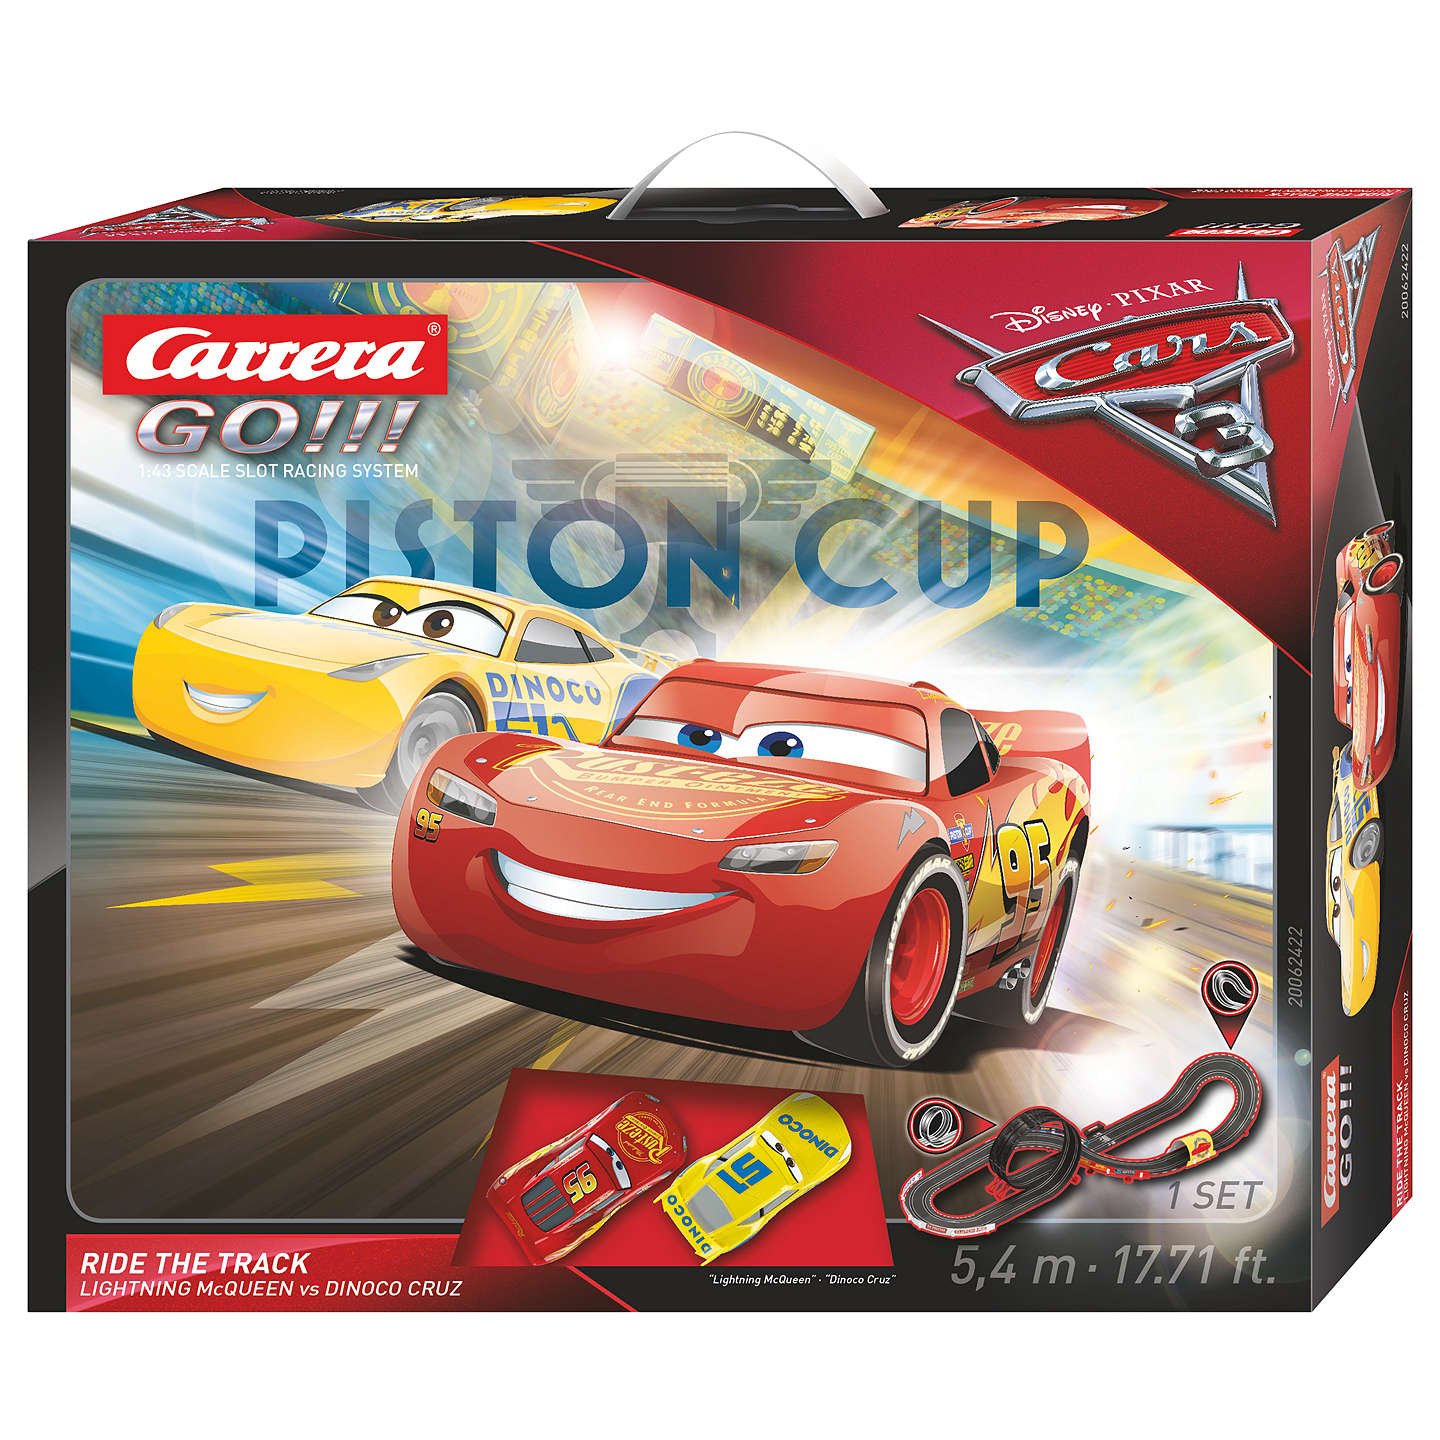 Disney Pixar Cars 3 Racing Set Online At Johnlewis.com ...